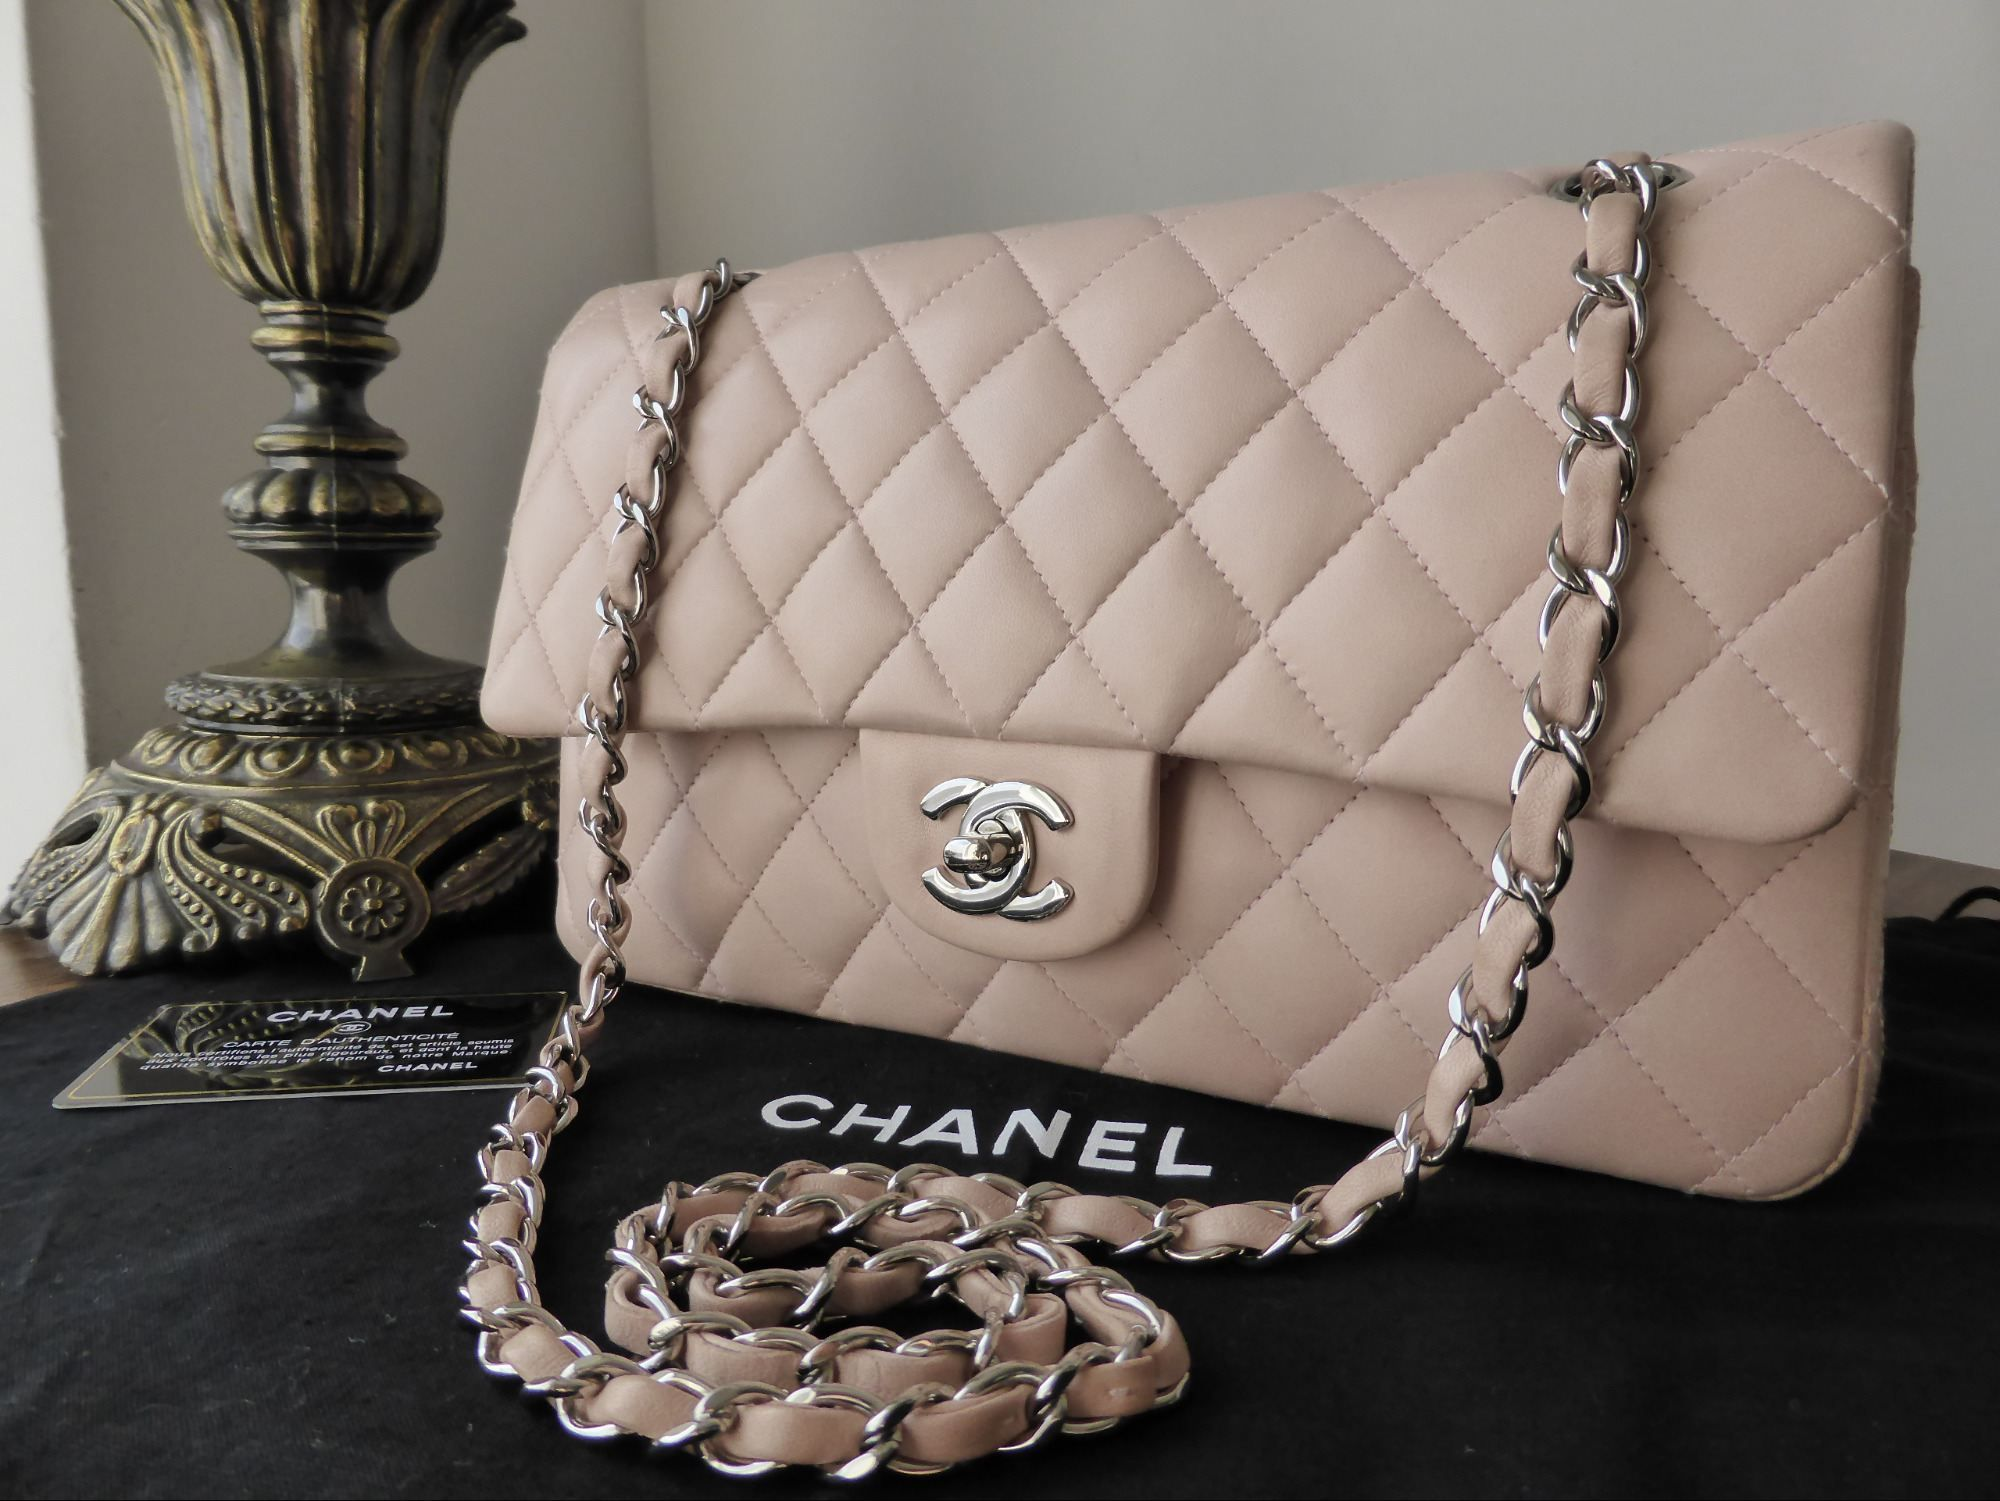 2d369f91a1dd Chanel Timeless Classic 2.55 Medium Flap Bag in Nude Pink Lambskin with  Silver Hardware >